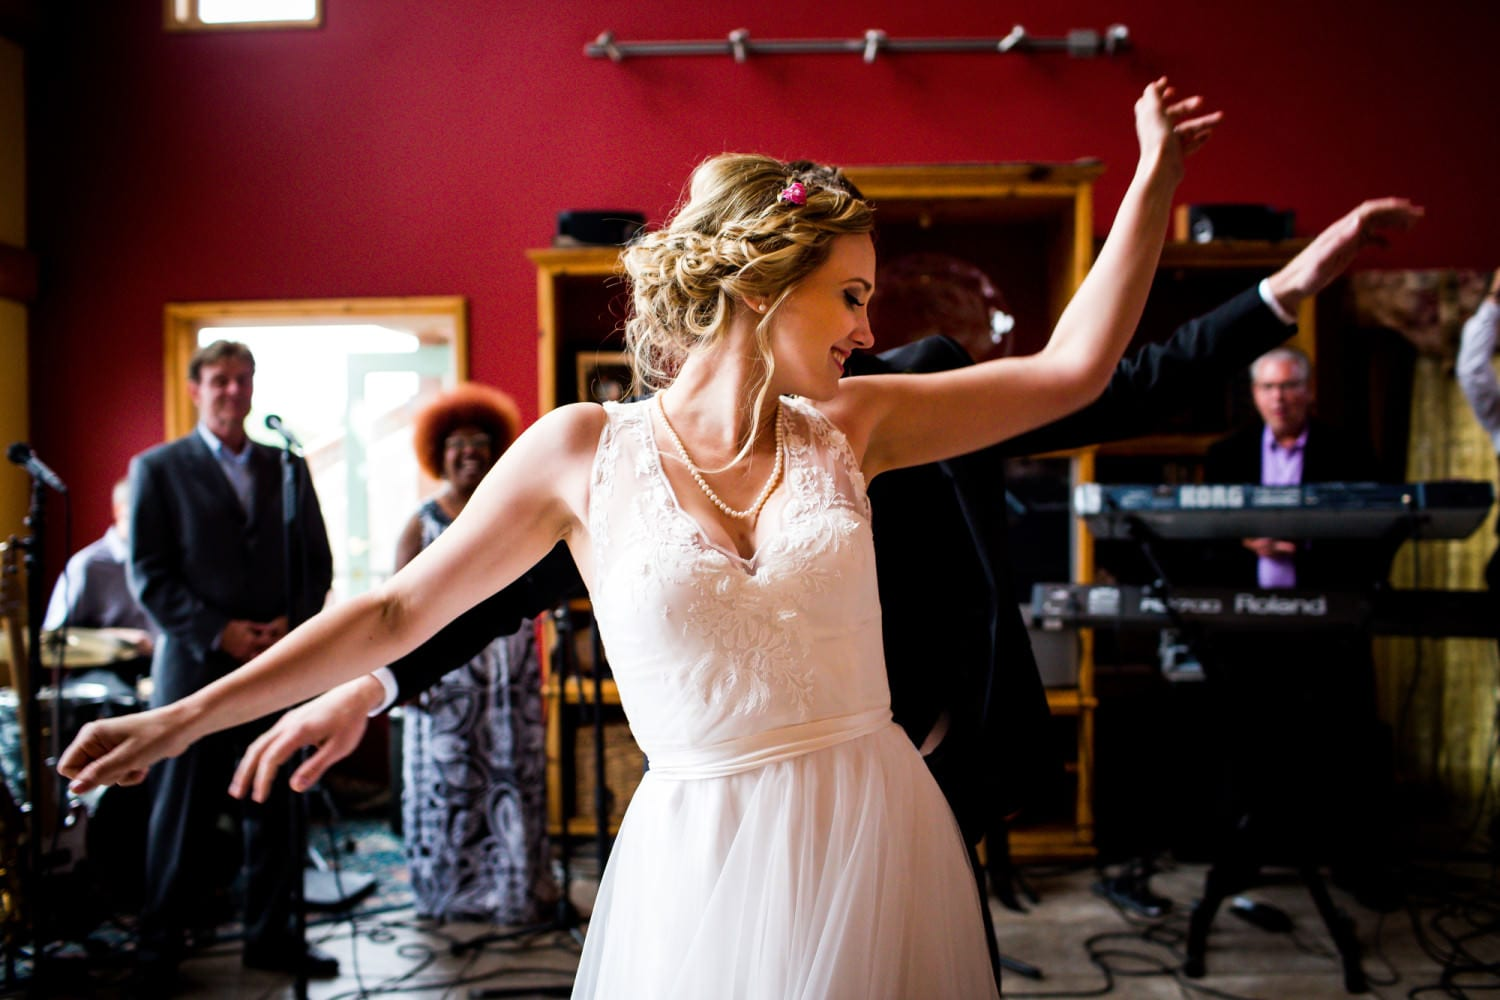 Storm Crest Cellars Wedding in South Beach Newport, Oregon by Stark Photography (11)